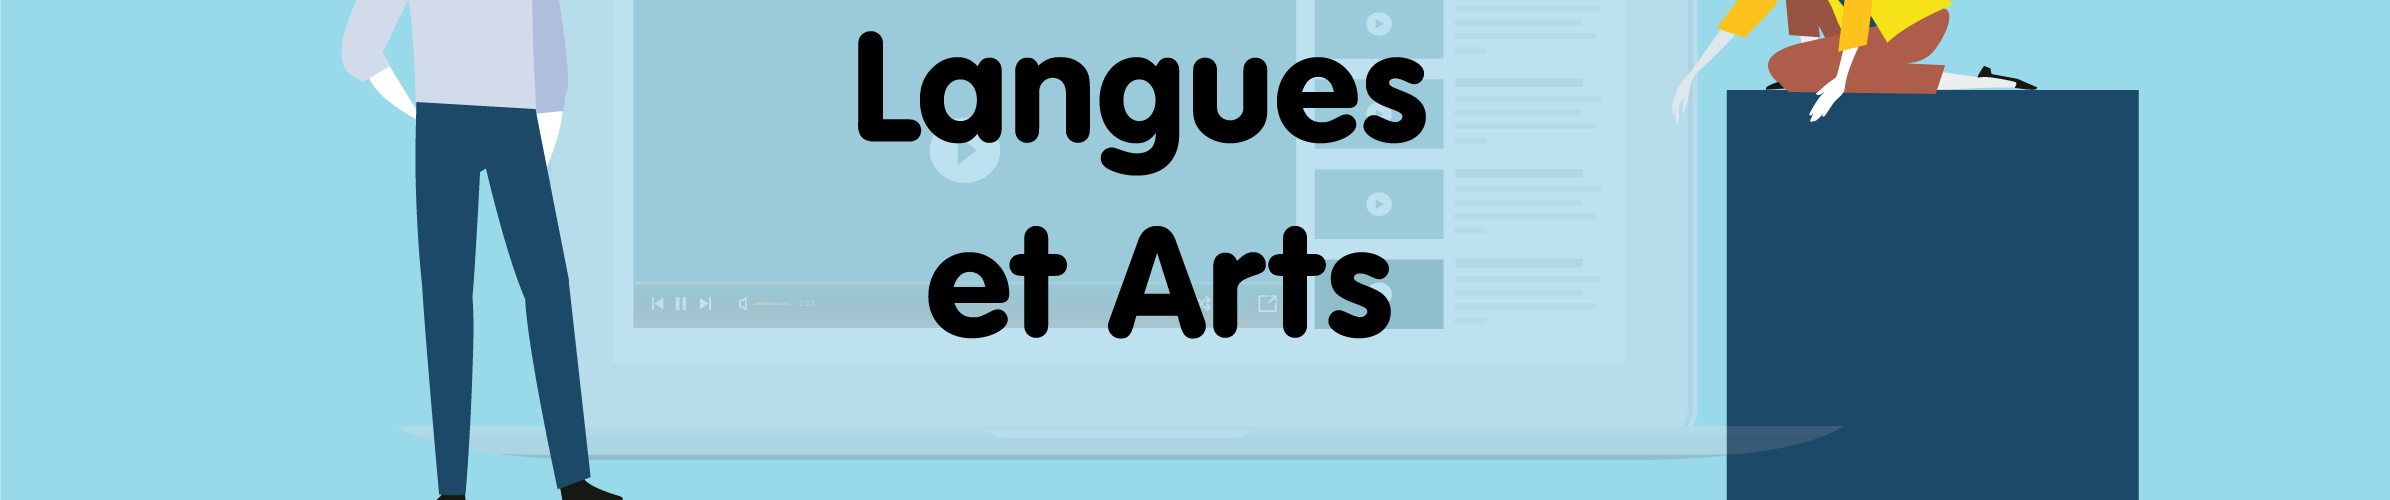 DANE Nancy-Metz Langues Vivantes et arts